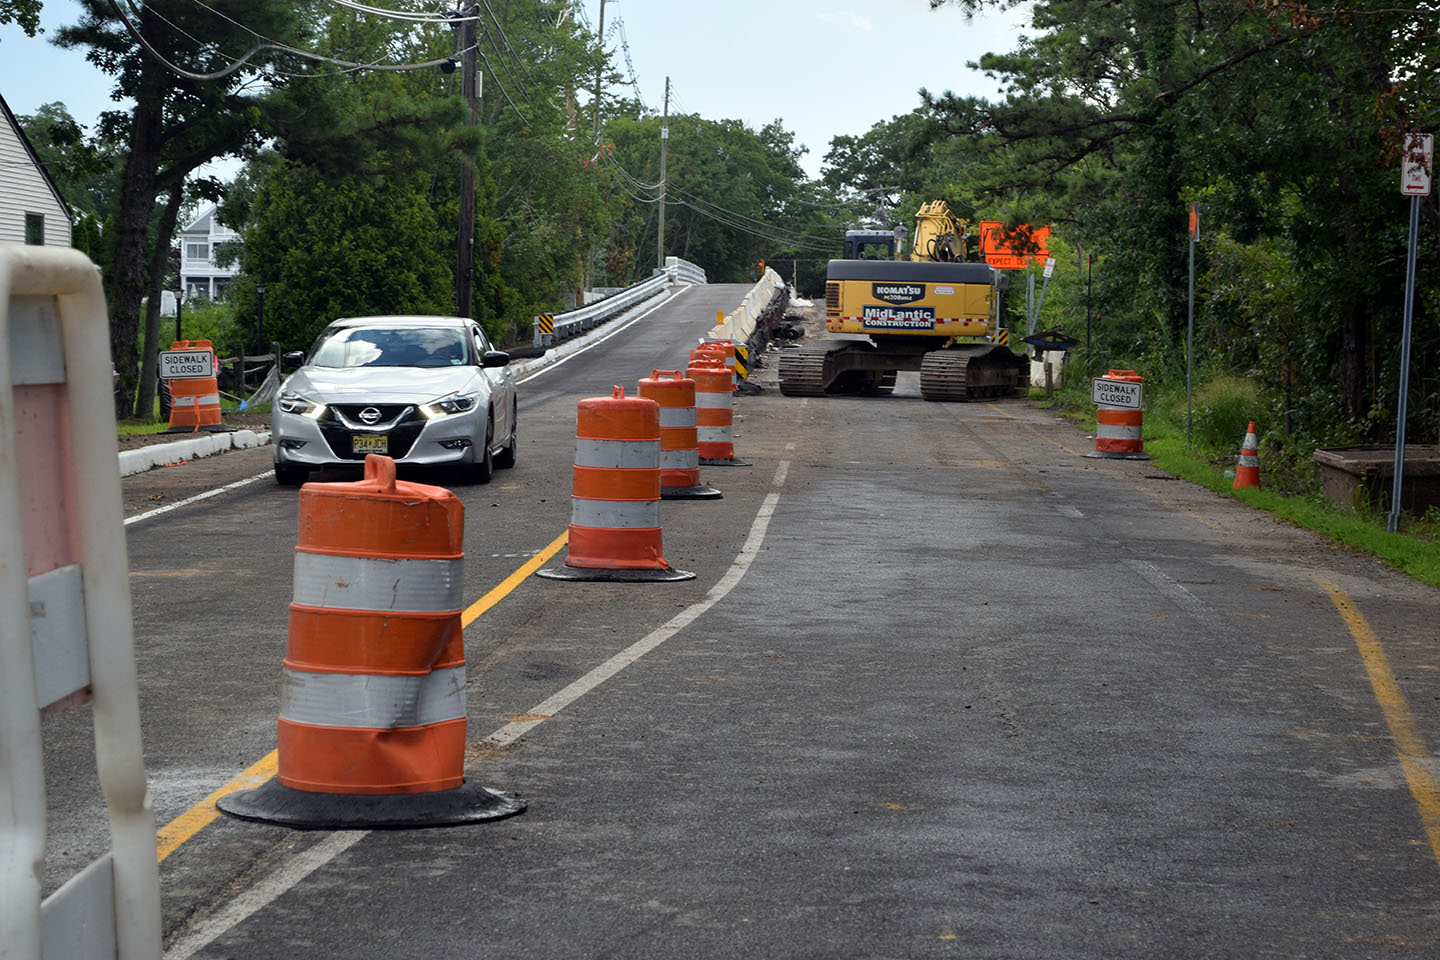 The new portion of the Midstreams bridge in Brick opens to traffic, Aug. 2, 2018. (Photo: Daniel Nee)